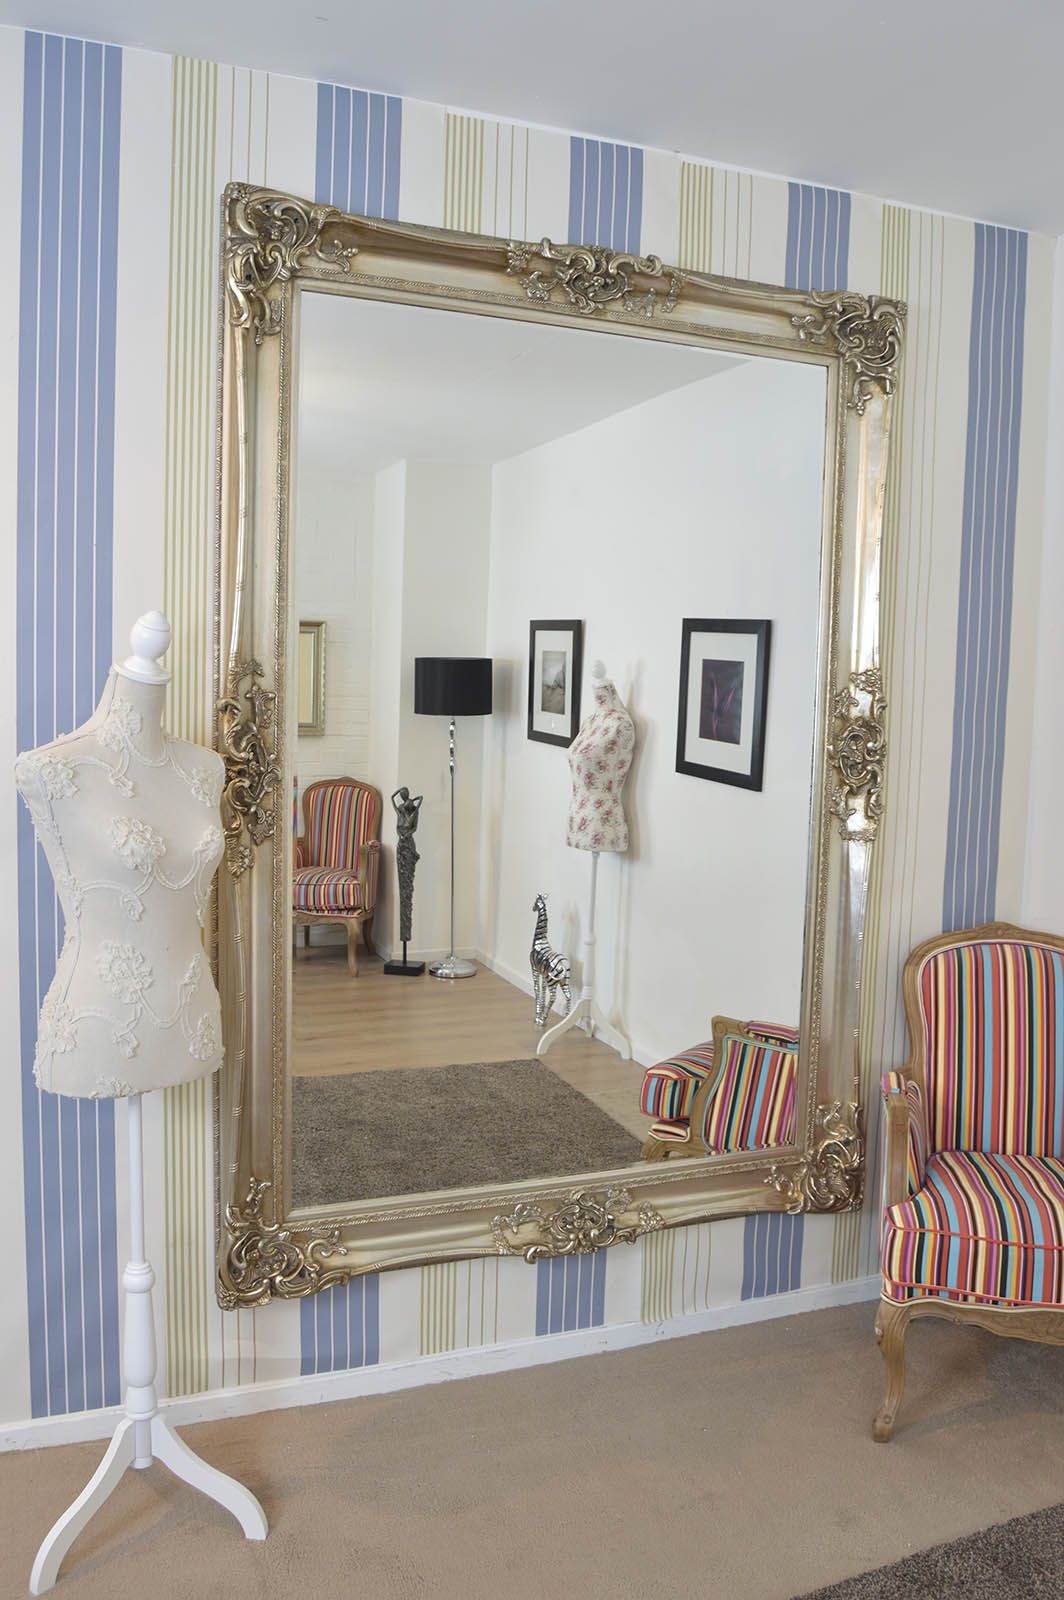 Mirror Outlet Has The Largest Range Of Antique Design Mirrors Including Large Boldly Ornate Bevelled Wall X